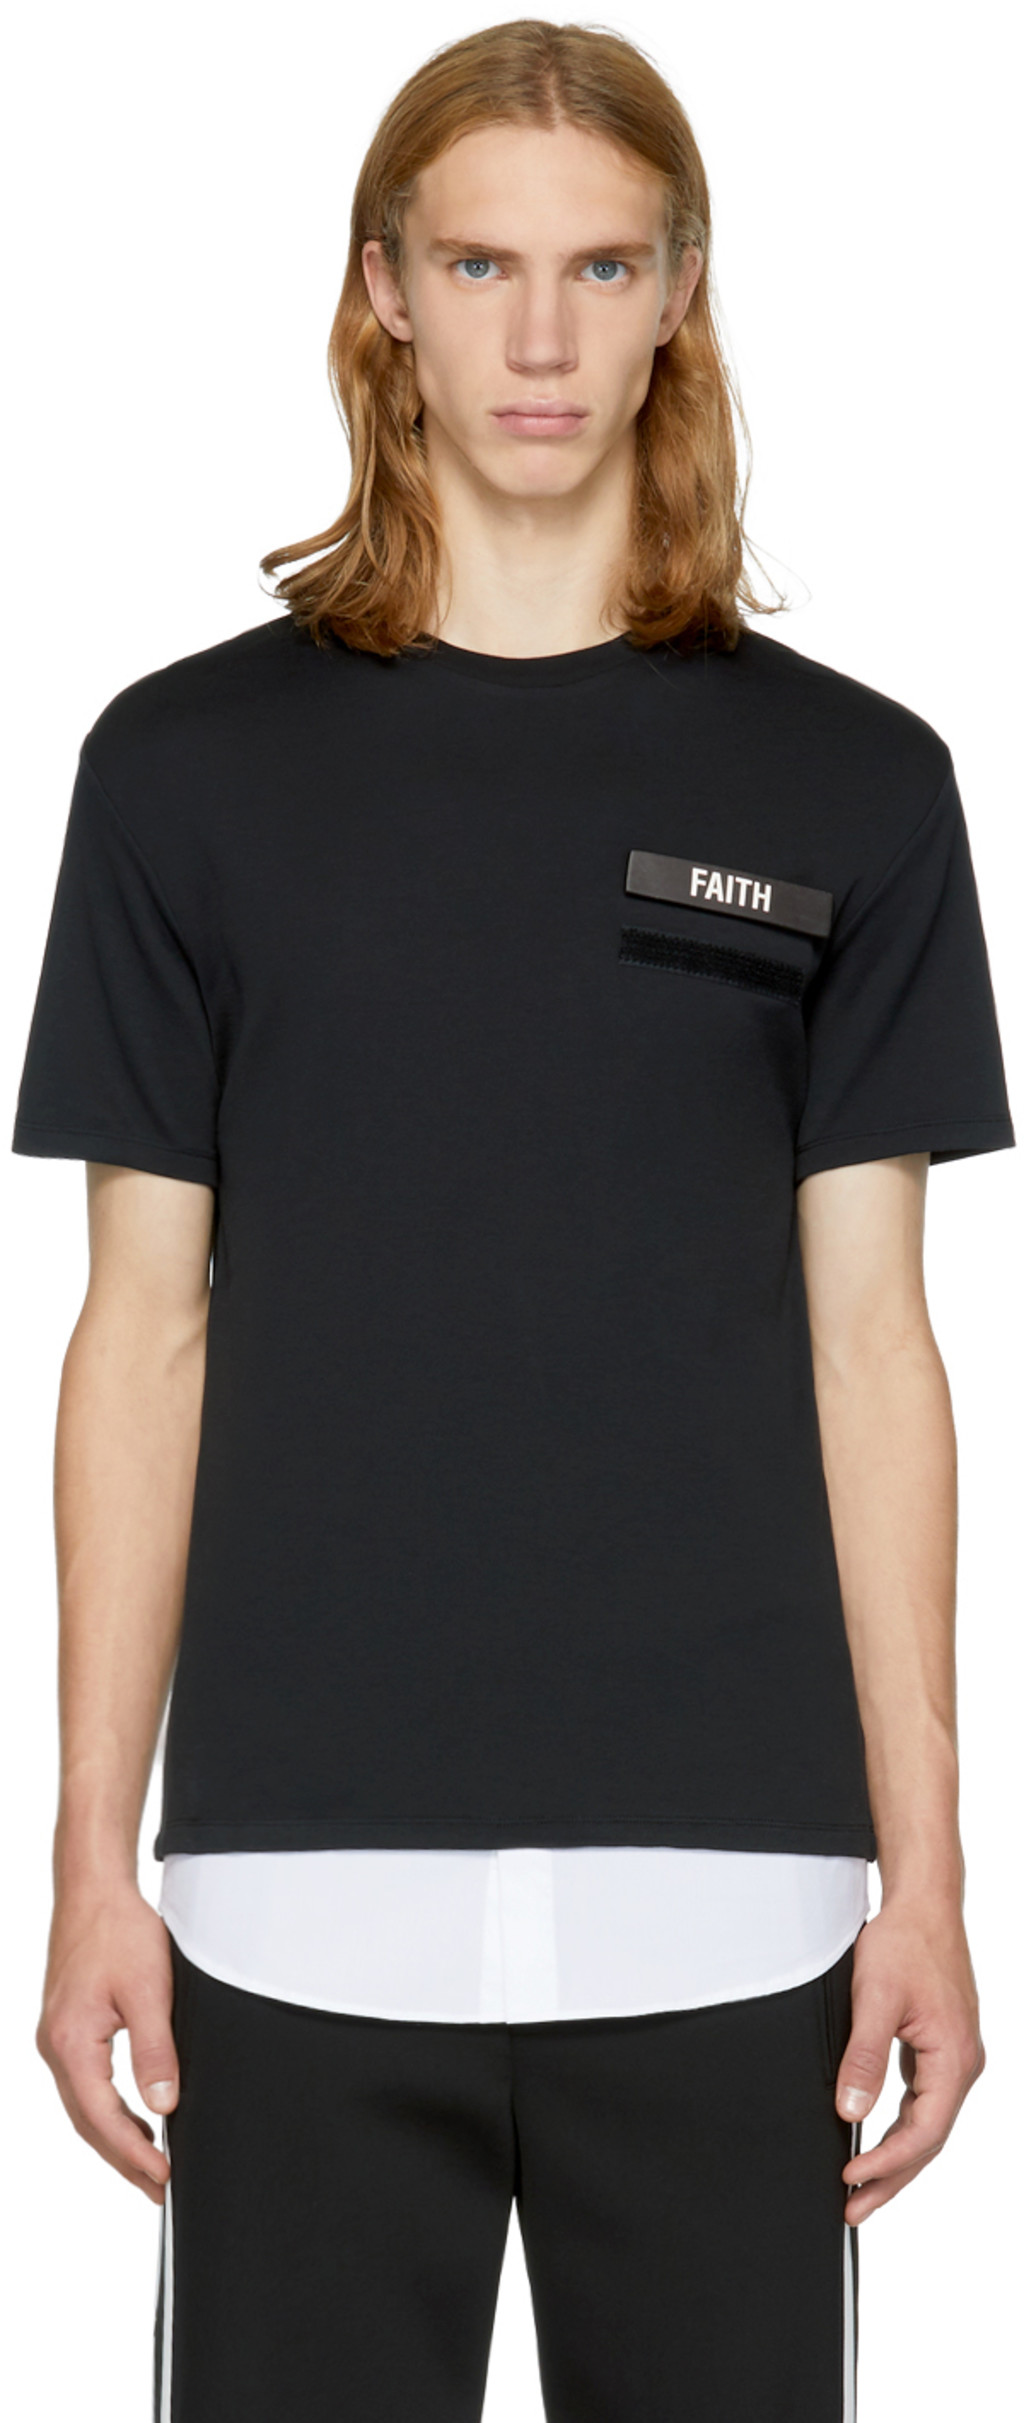 Black Iconic Pierced Off Side T-Shirt Neil Barrett Discount Pictures Sale From China Best Prices Sale Online Ni01R9xnx